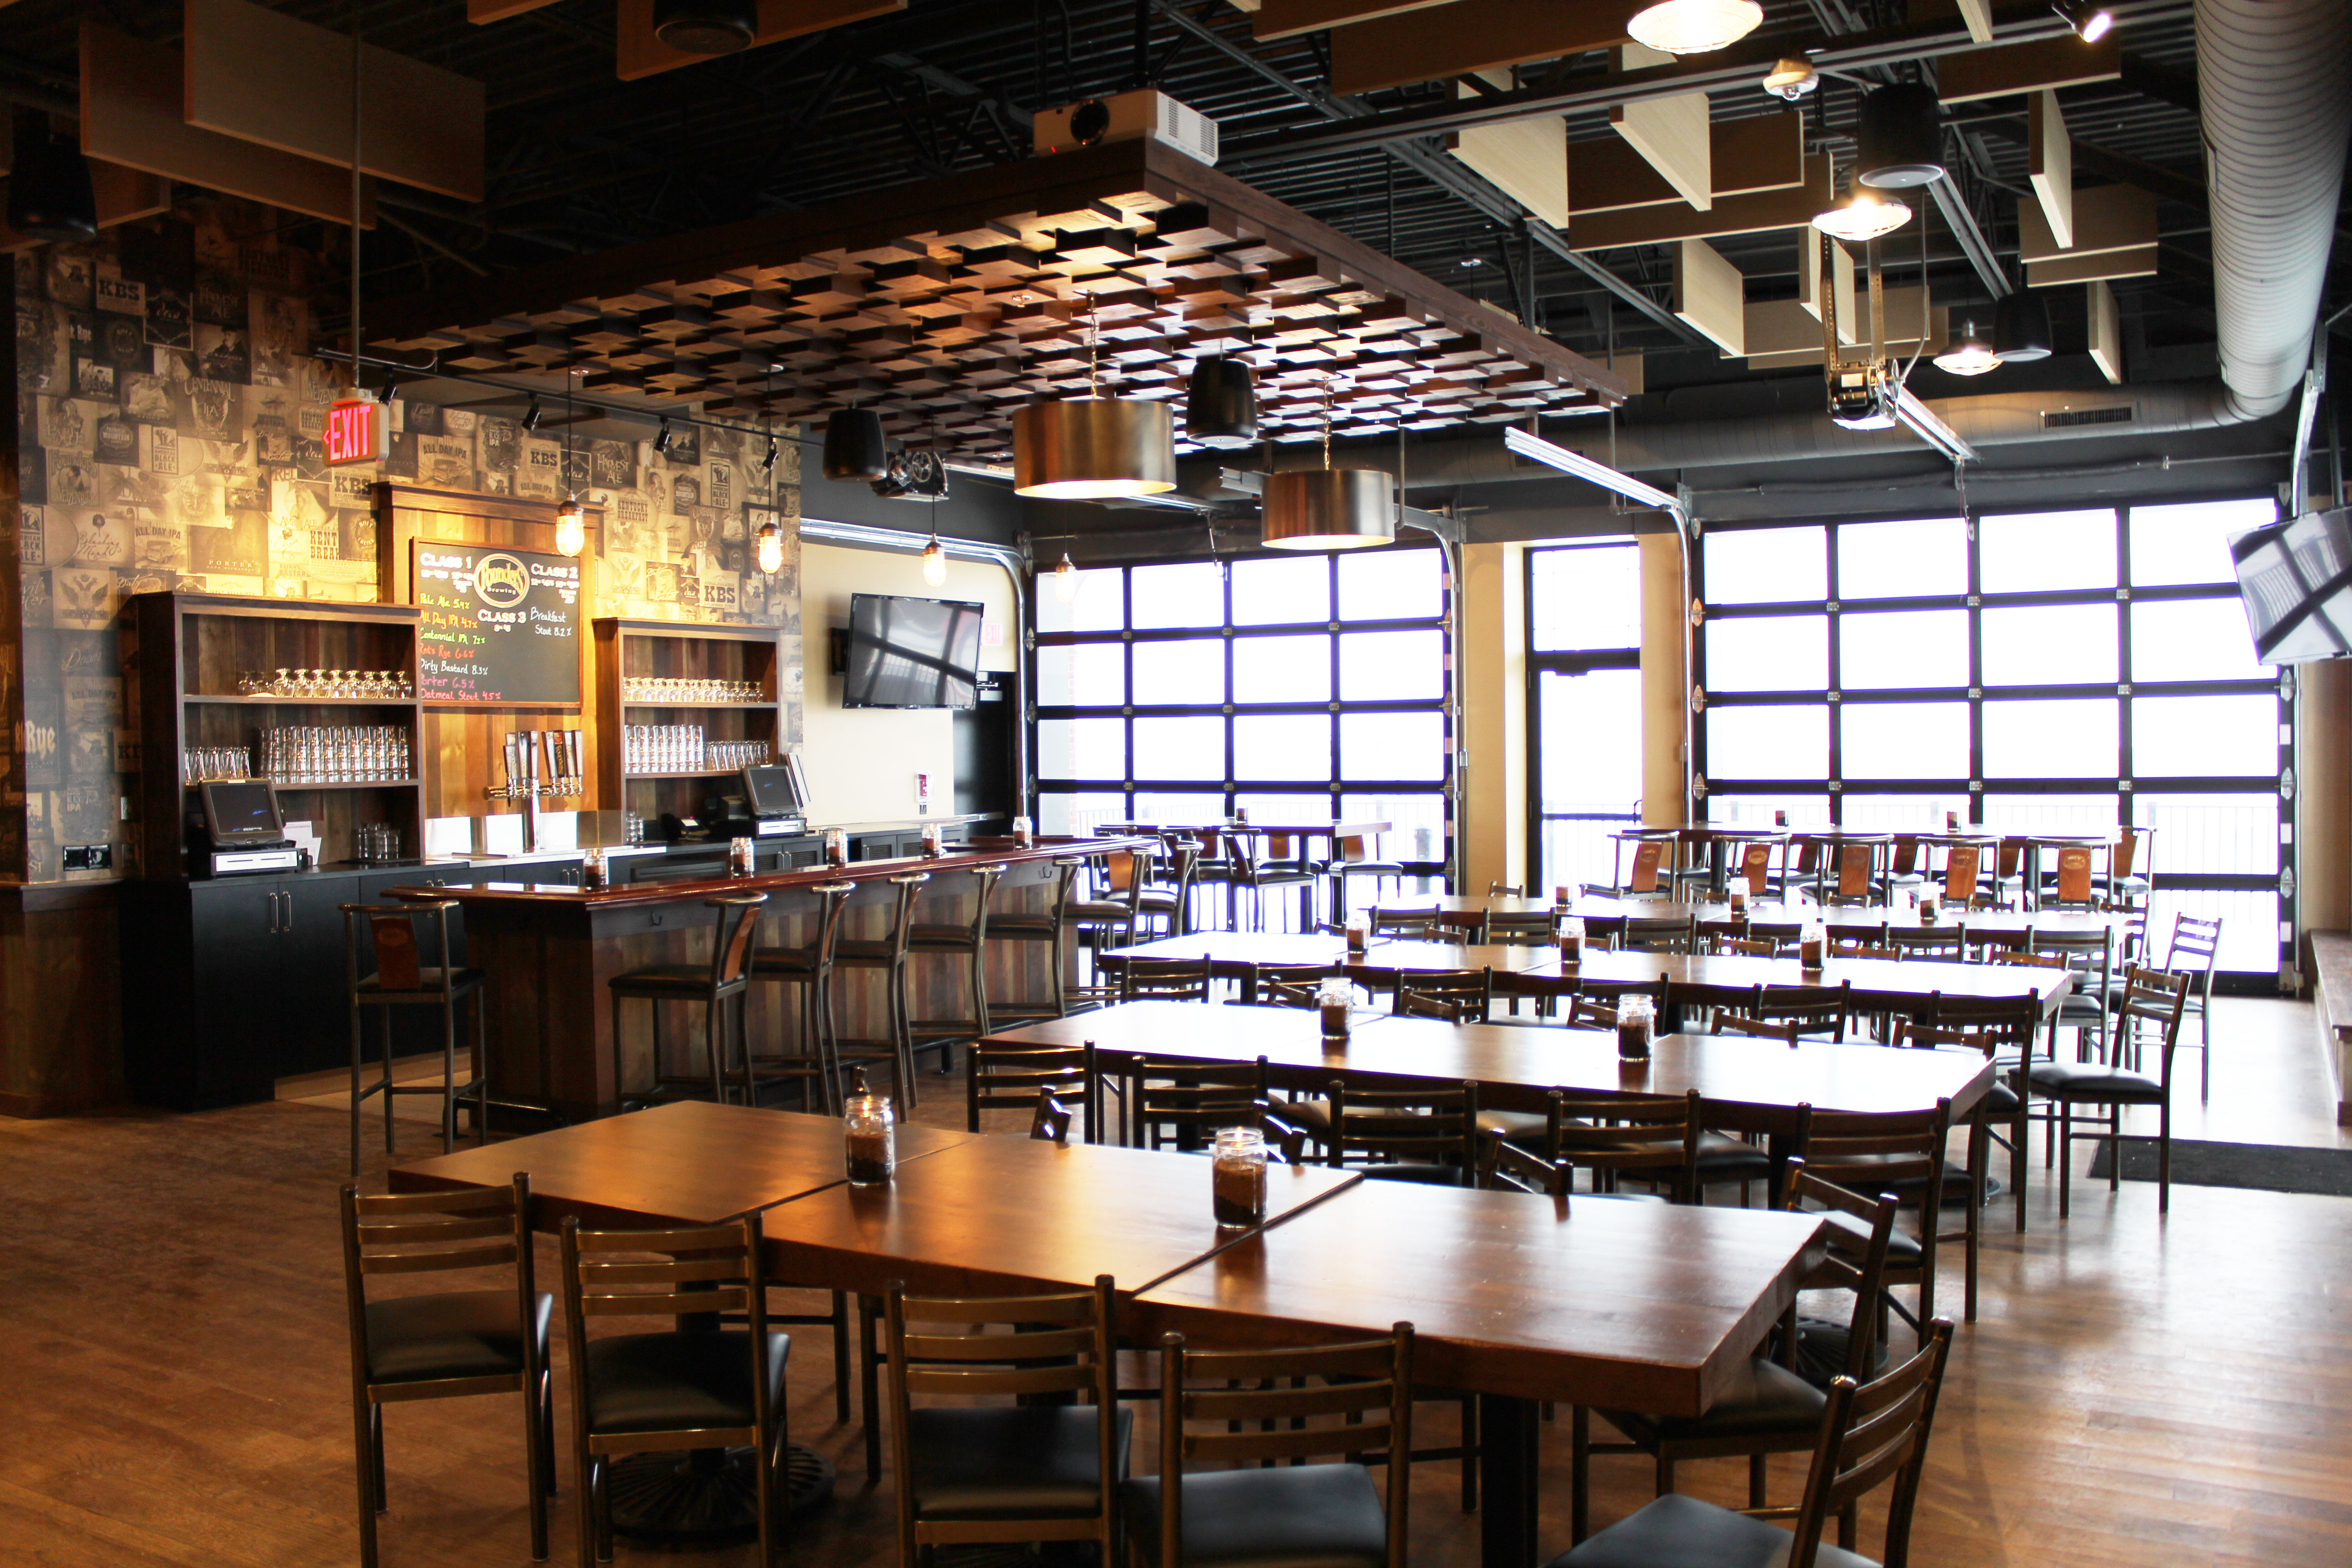 The Centennial Room view with tables and chairs facing windowed garage doors